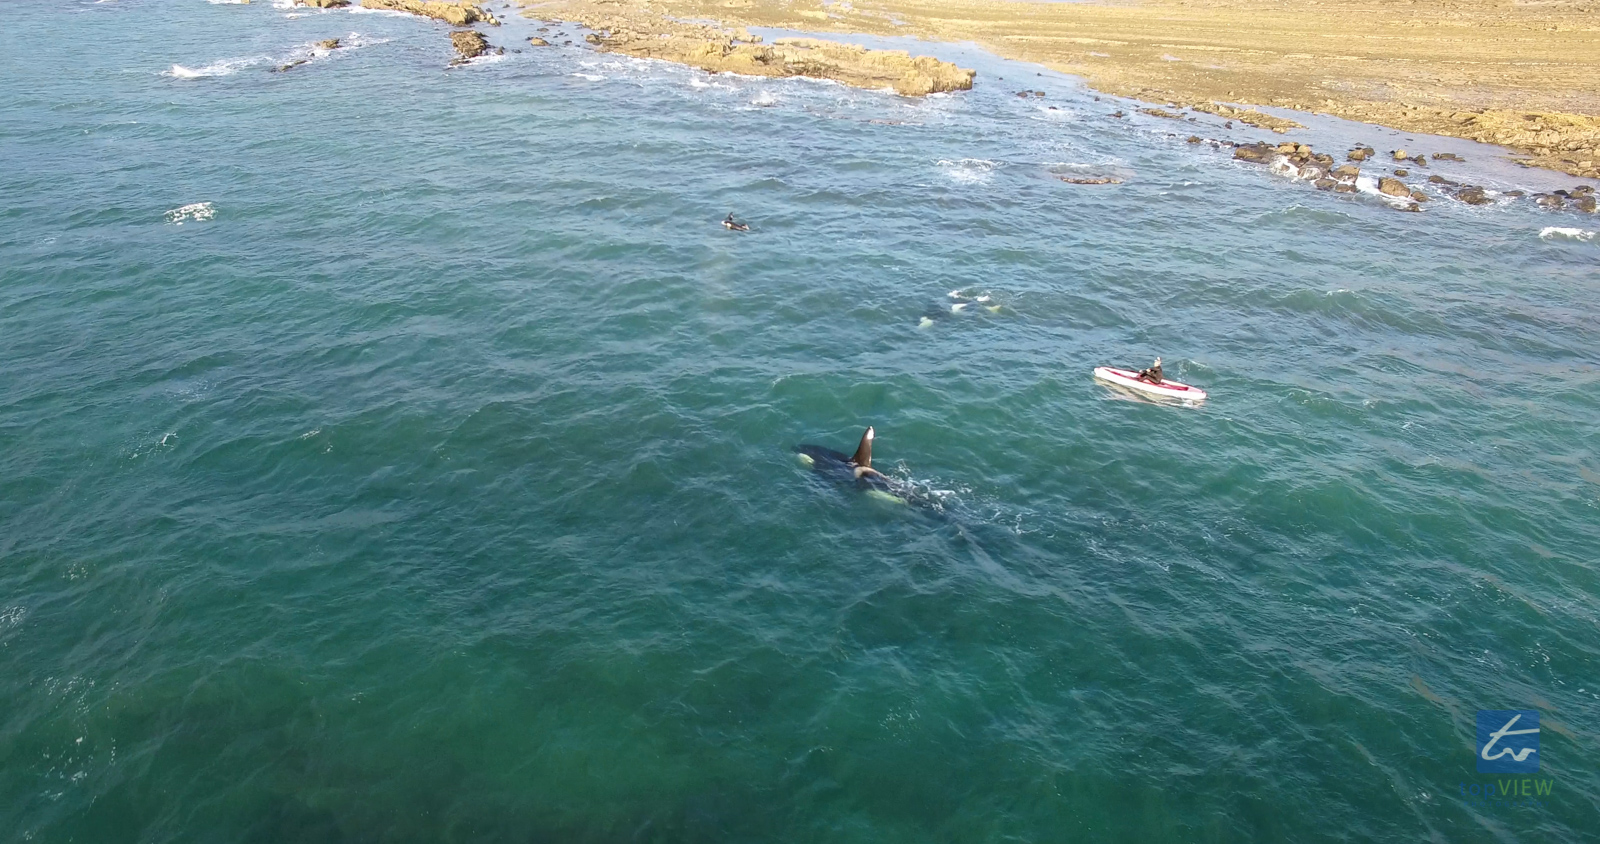 Orca with Kayaker / snorkeler in Army Bay, Auckland, New Zealand